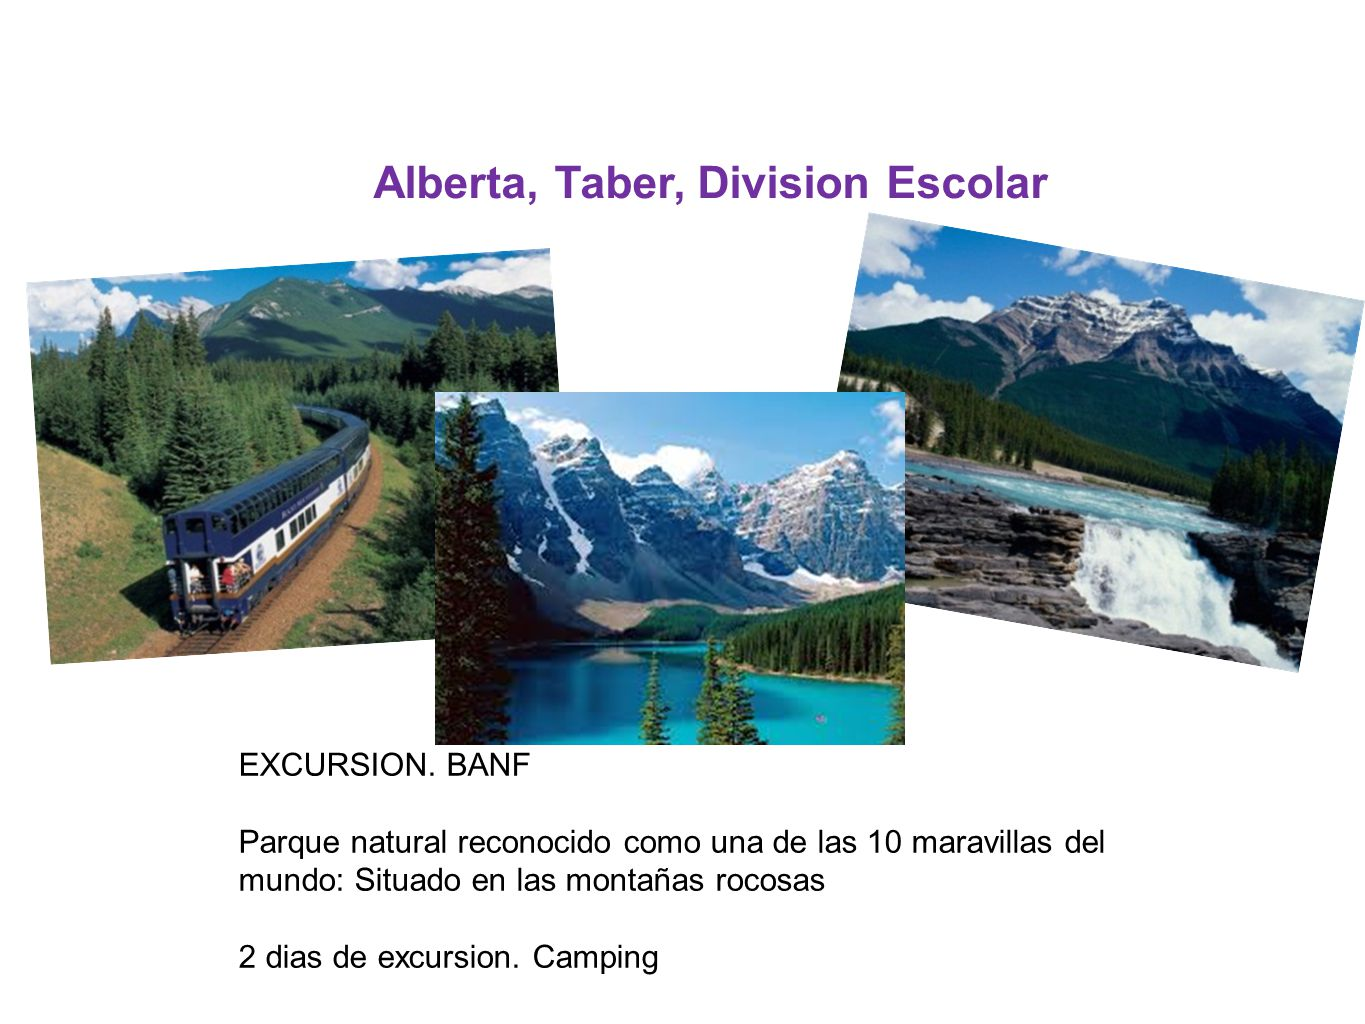 Alberta, Taber, Division Escolar EXCURSION.